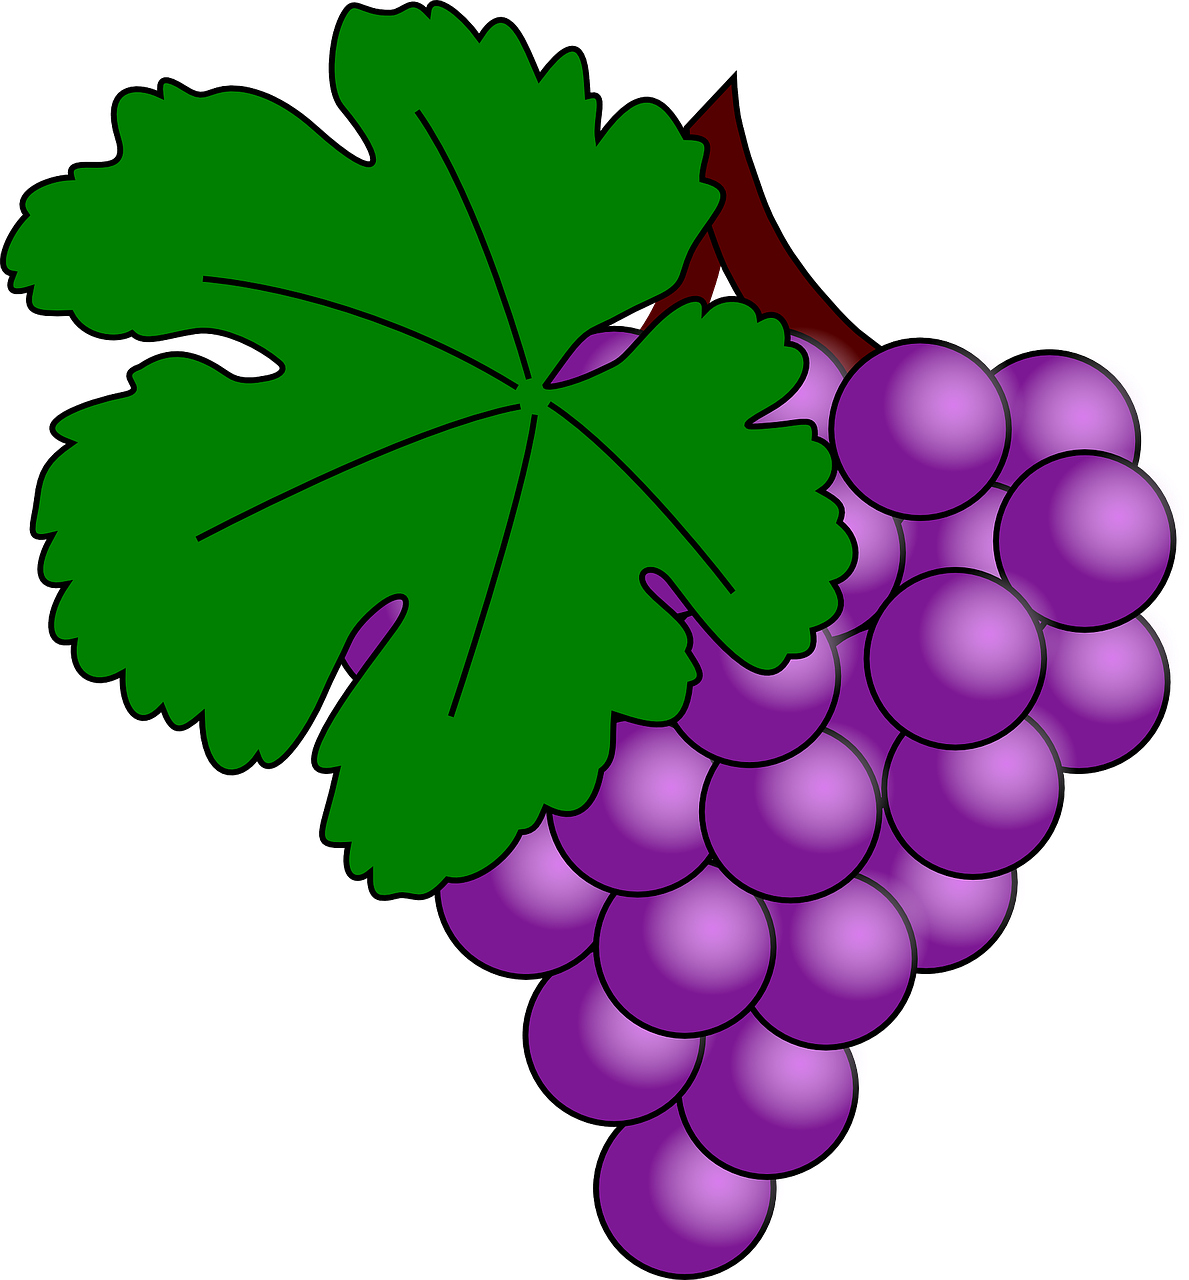 grapes fruit purple free photo